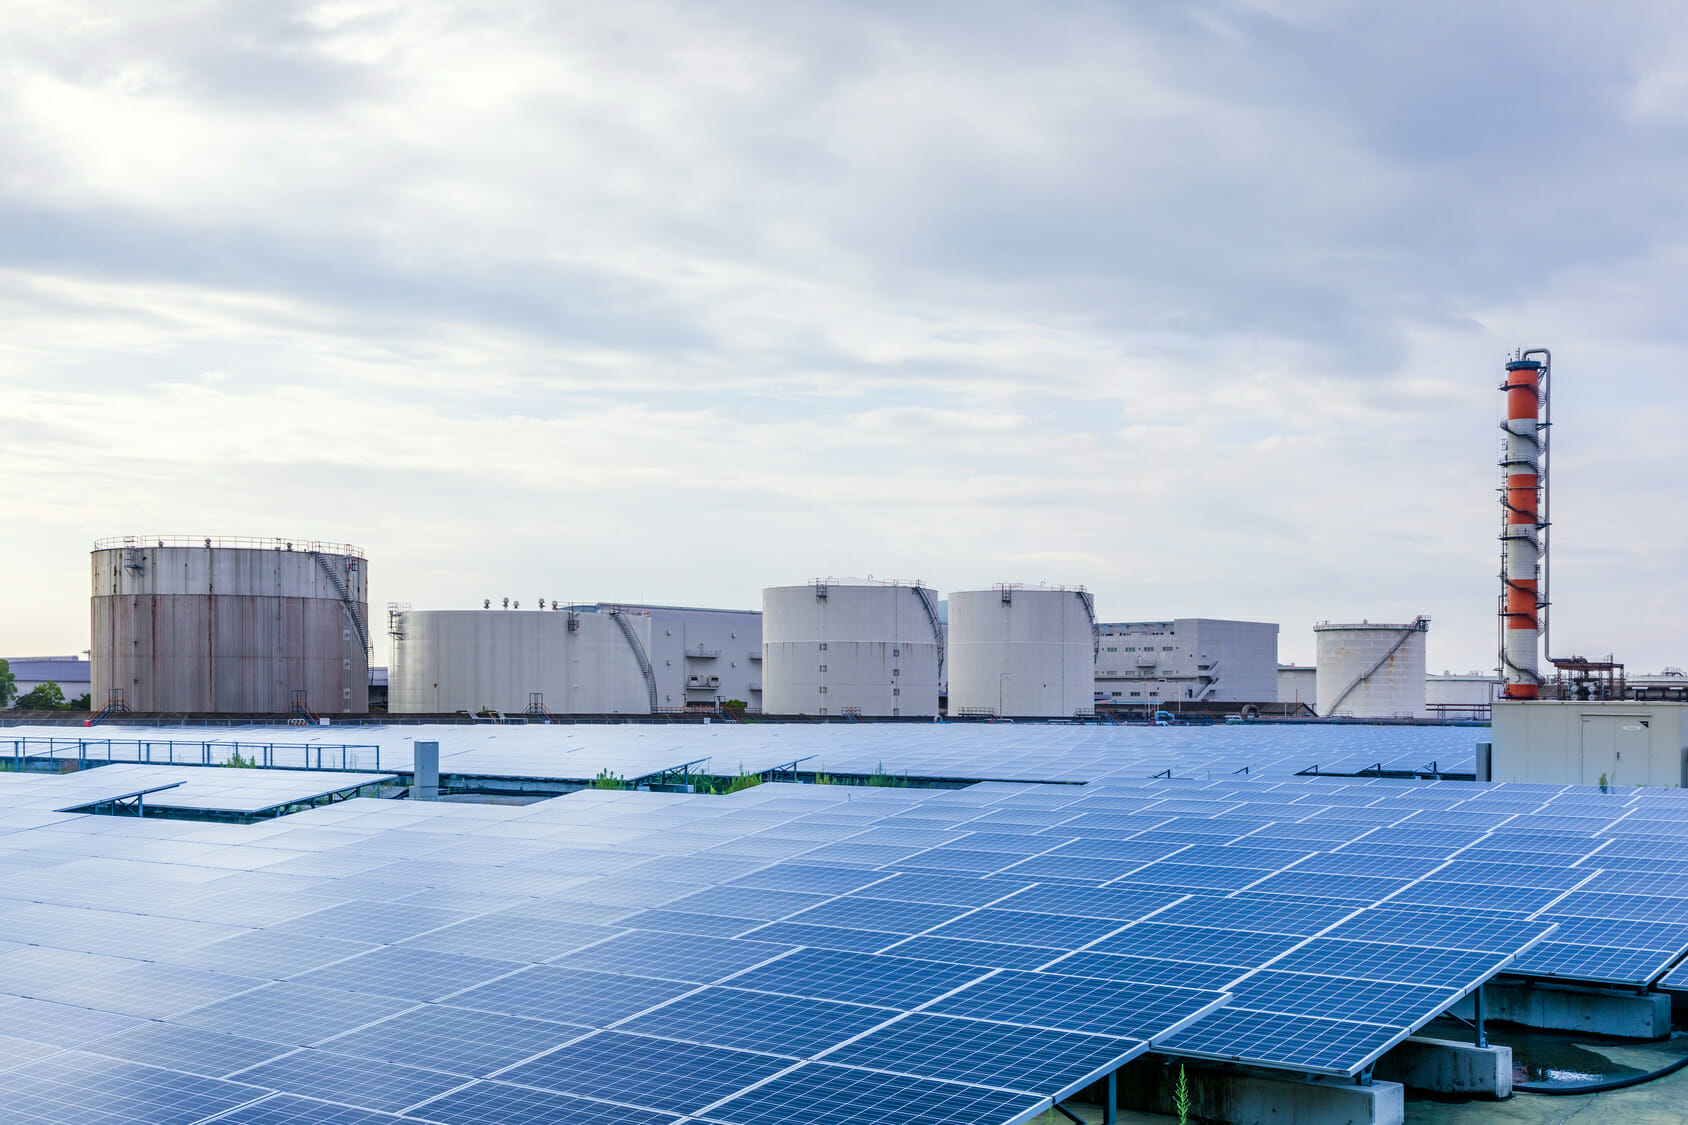 industrial buildings and solar panels